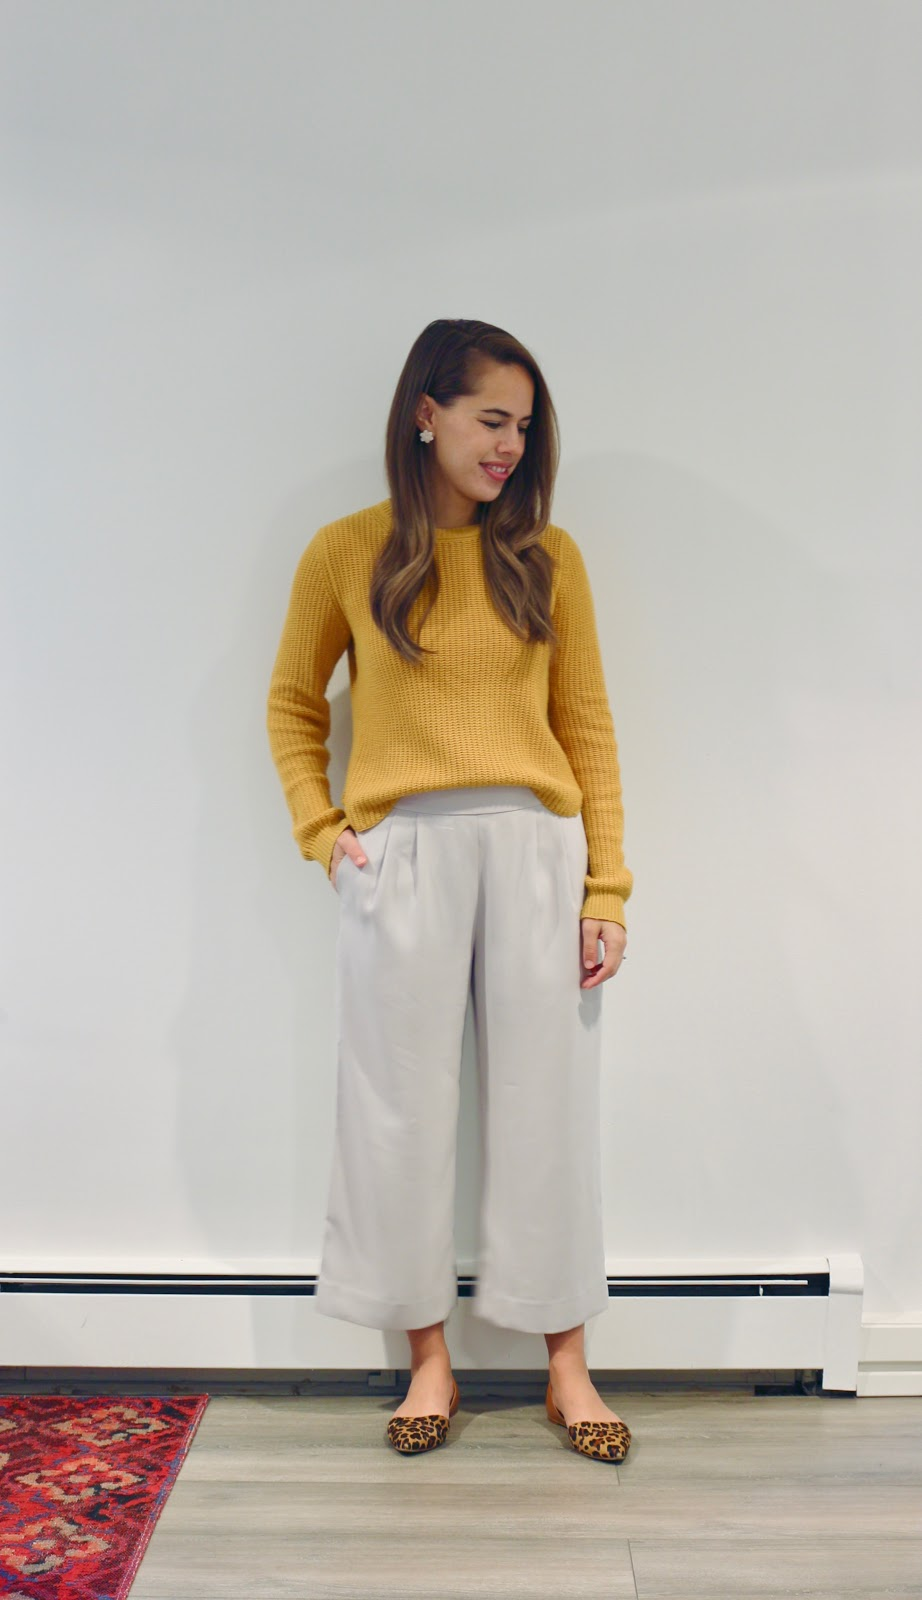 Jules in Flats - Wide Leg Crop Pants with Mustard Sweater (Business Casual Workwear on a Budget)